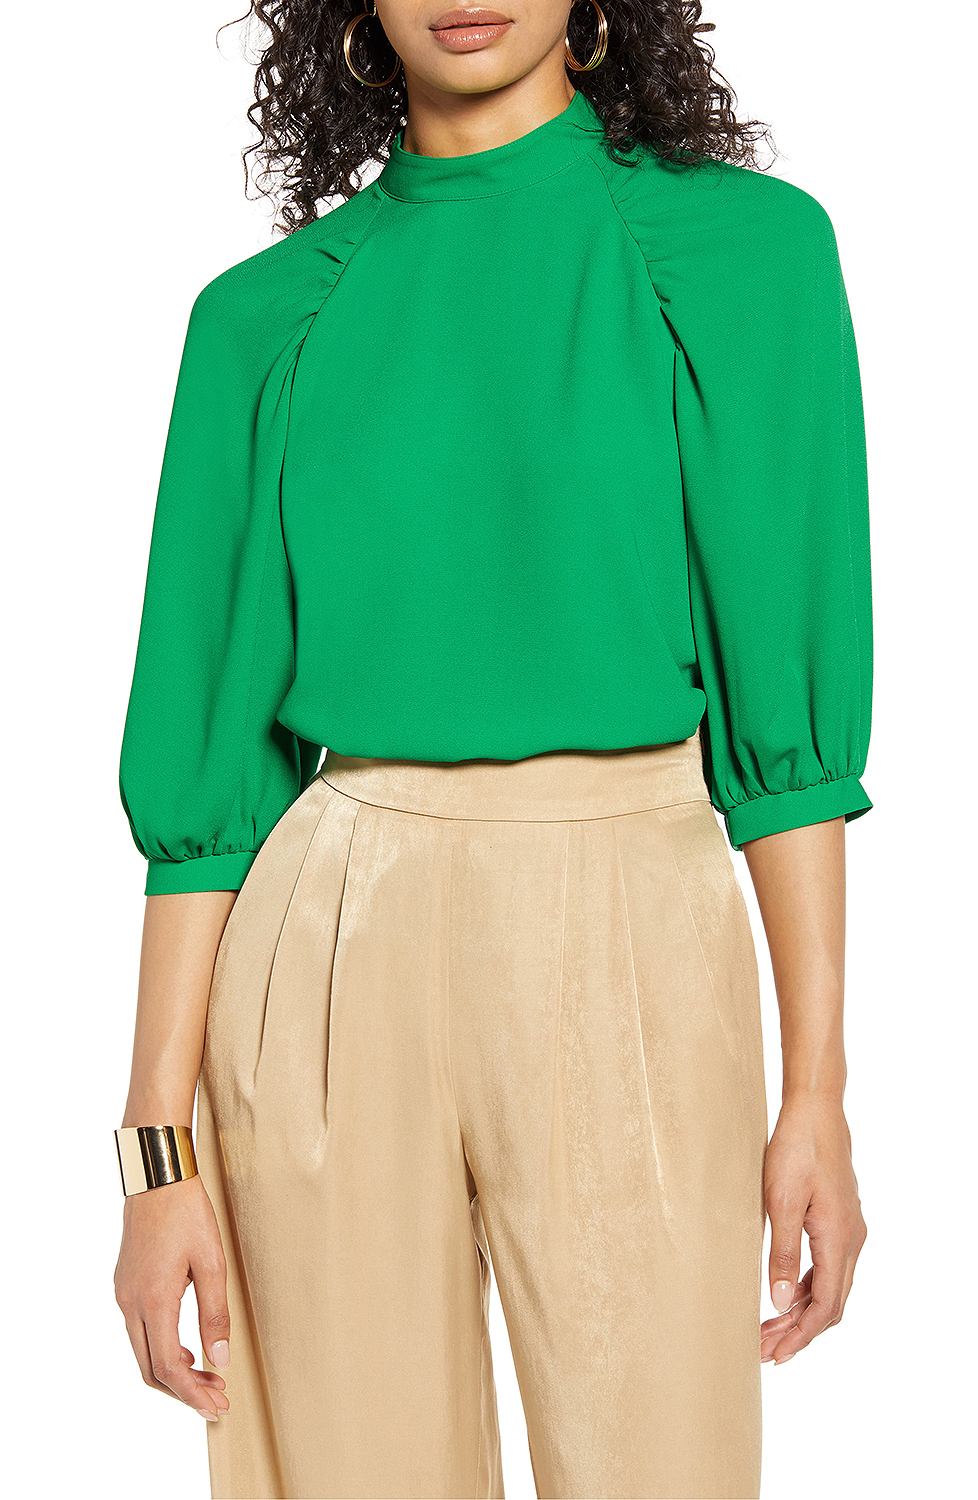 green blouse from nordstrom